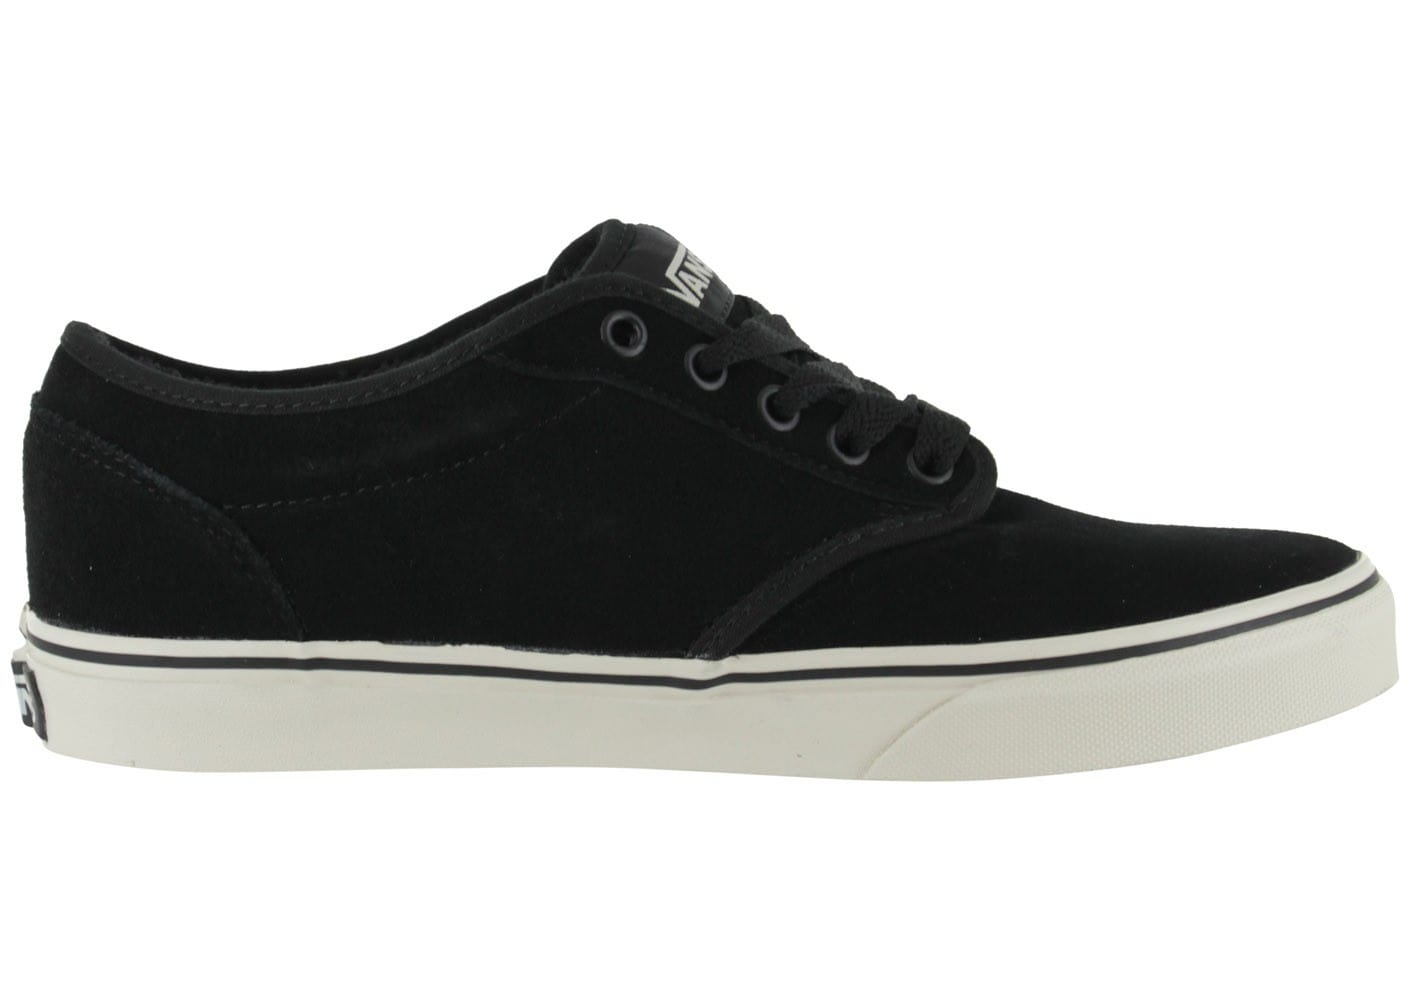 Chaussure Vans Atwood Noir-Noir Suede zN4Rb